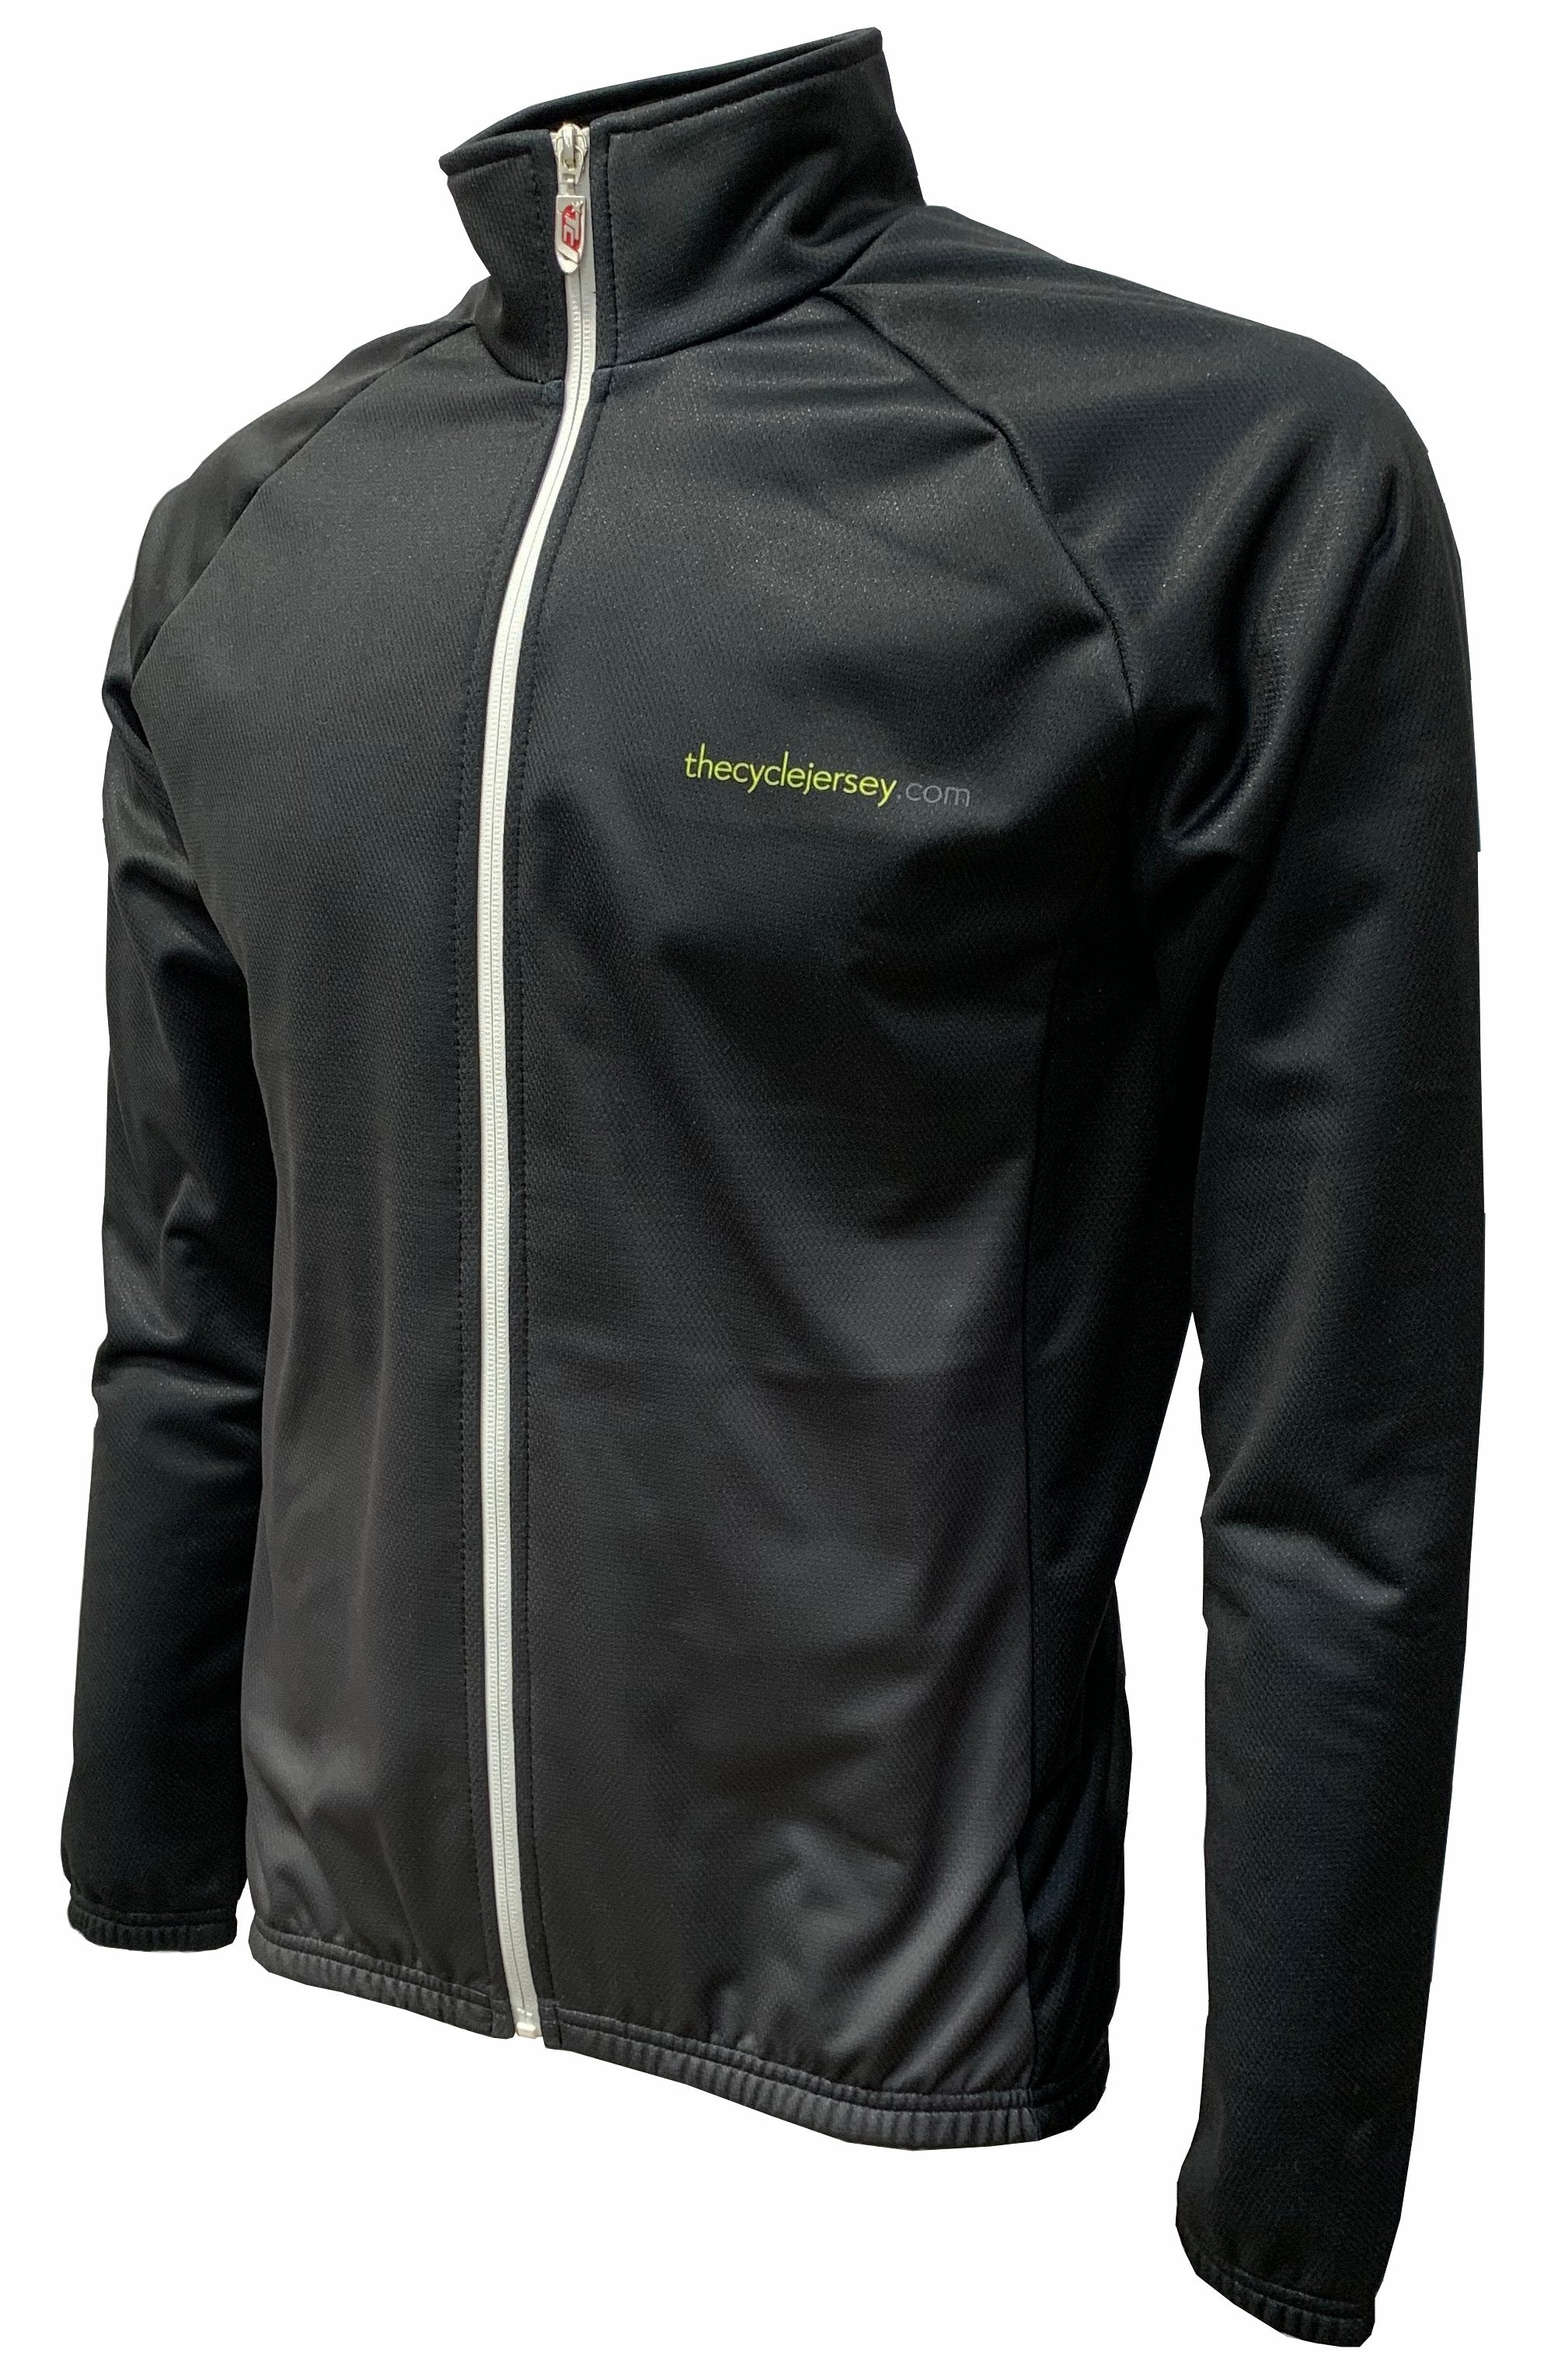 Fade Windcheeta Cycling Jacket Front